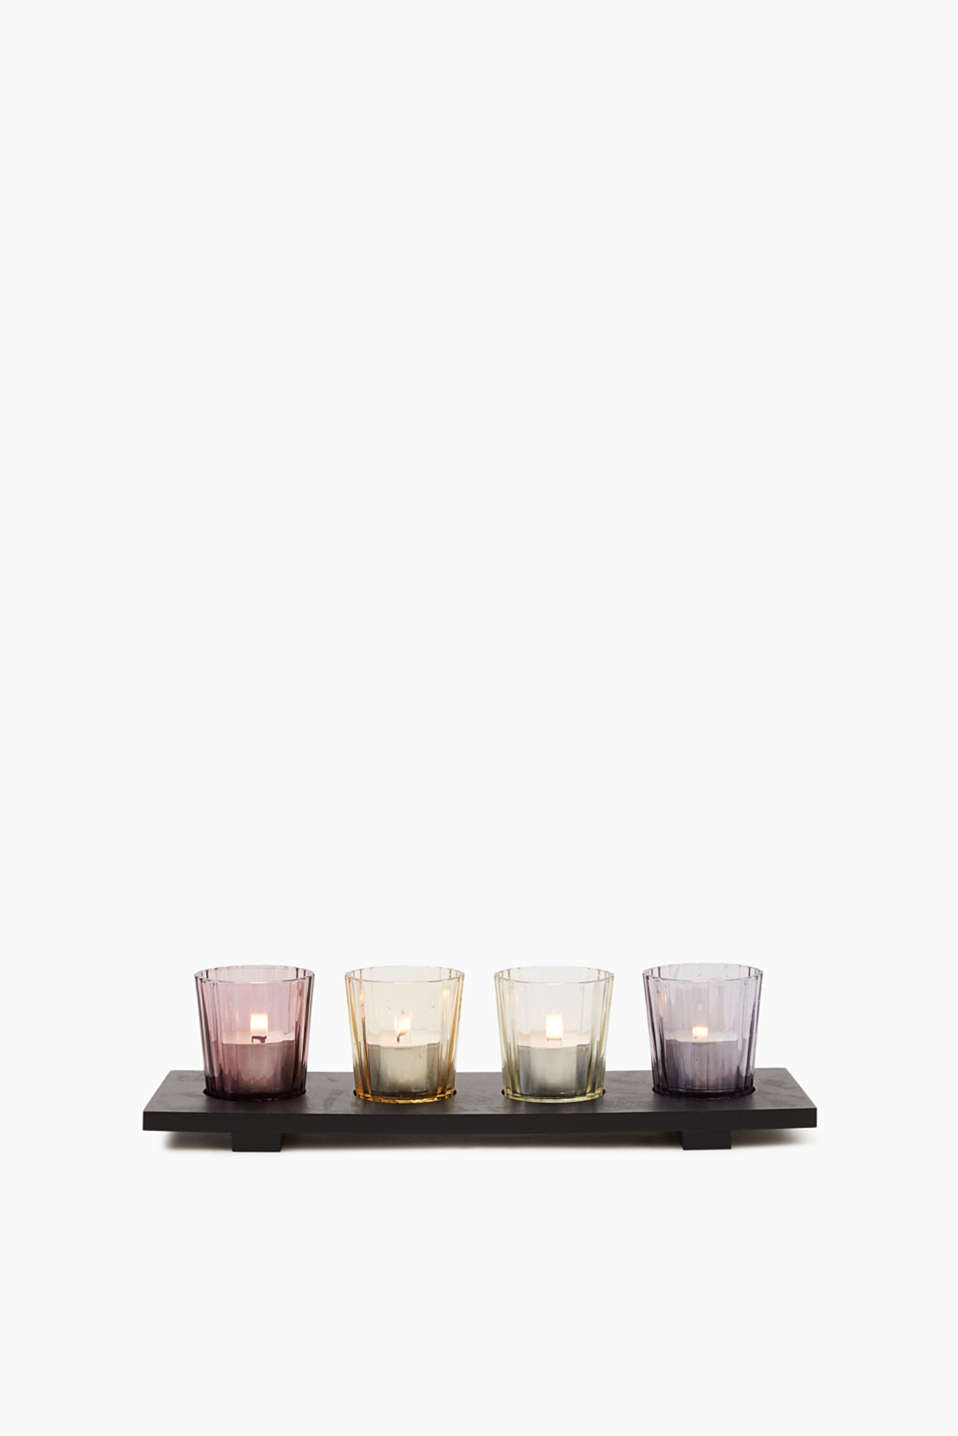 Inspired by Japanese design! This tealight set will bright some cosy light to your interior.